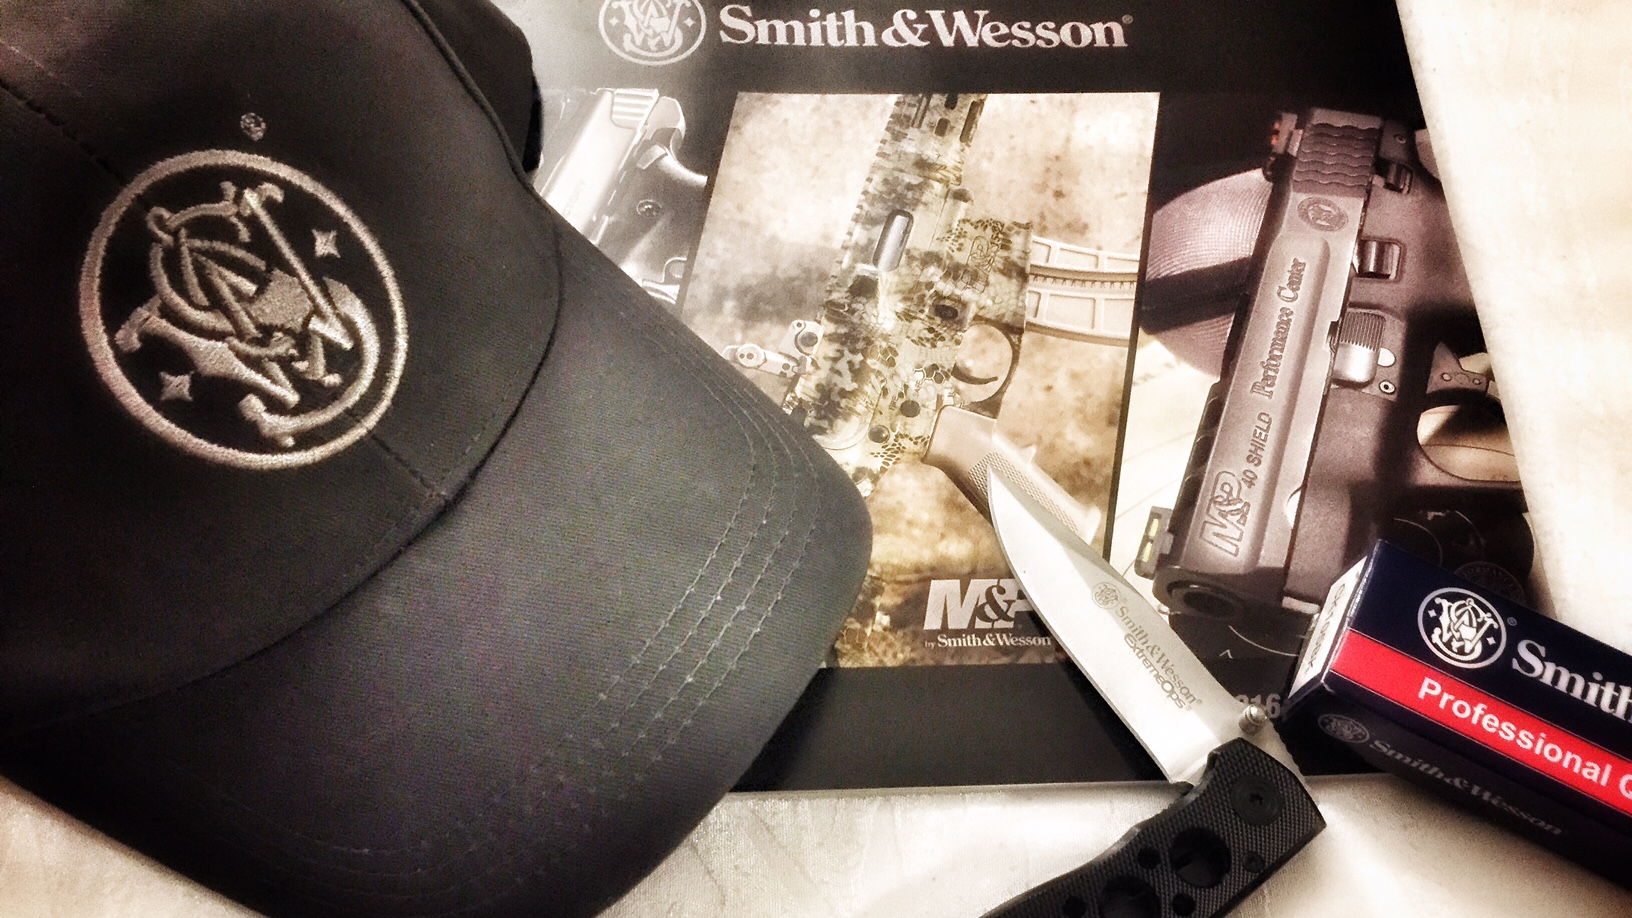 S&W IDPA Indoor Nationals Goodies Giveaway